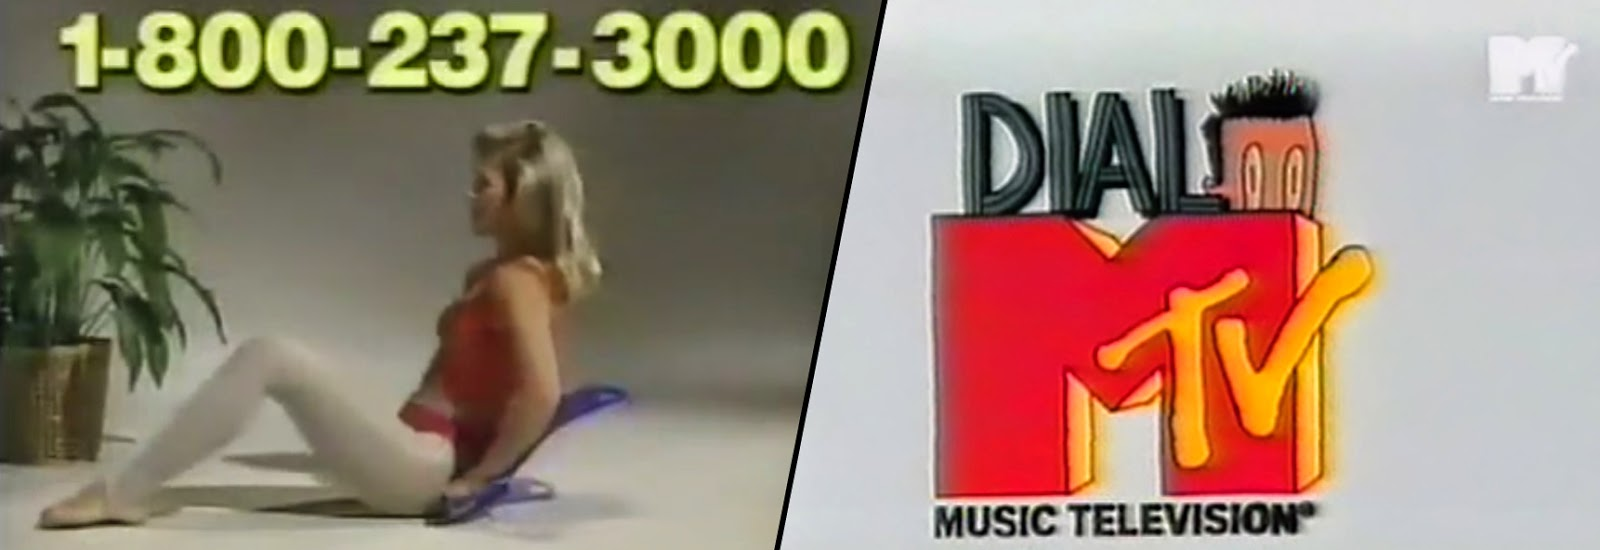 composite image of The Abdominizer TV commercial and Dial MTV Hotline TV promo.